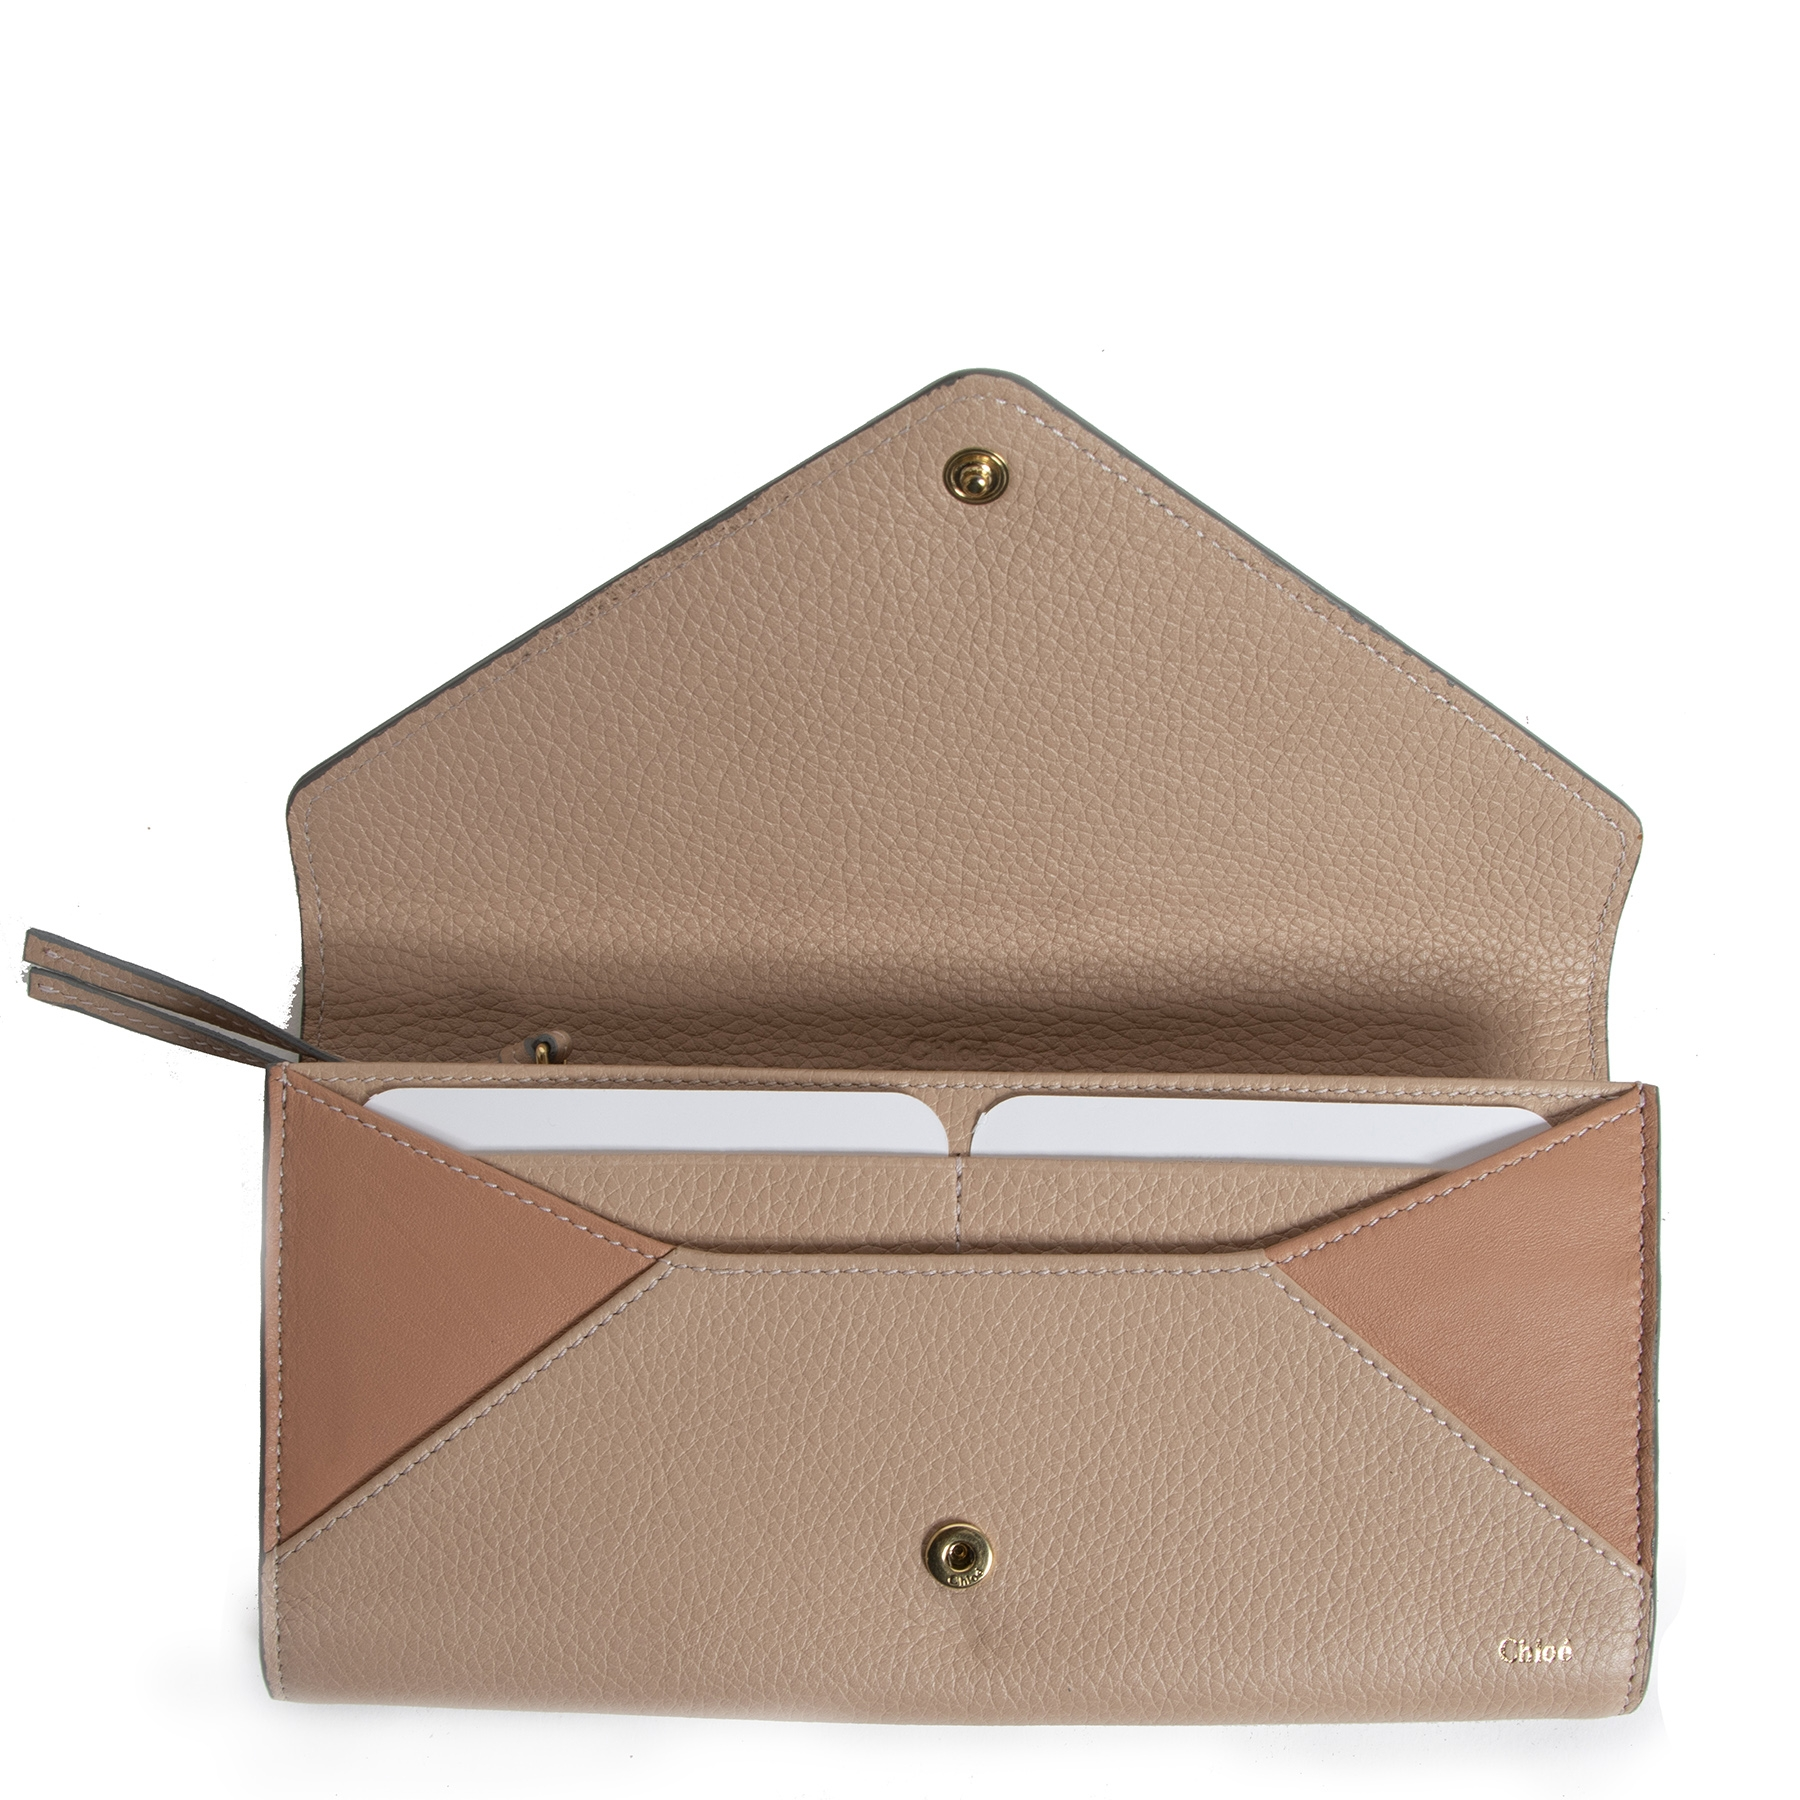 Chloé Nude Leather Envelope Wallet